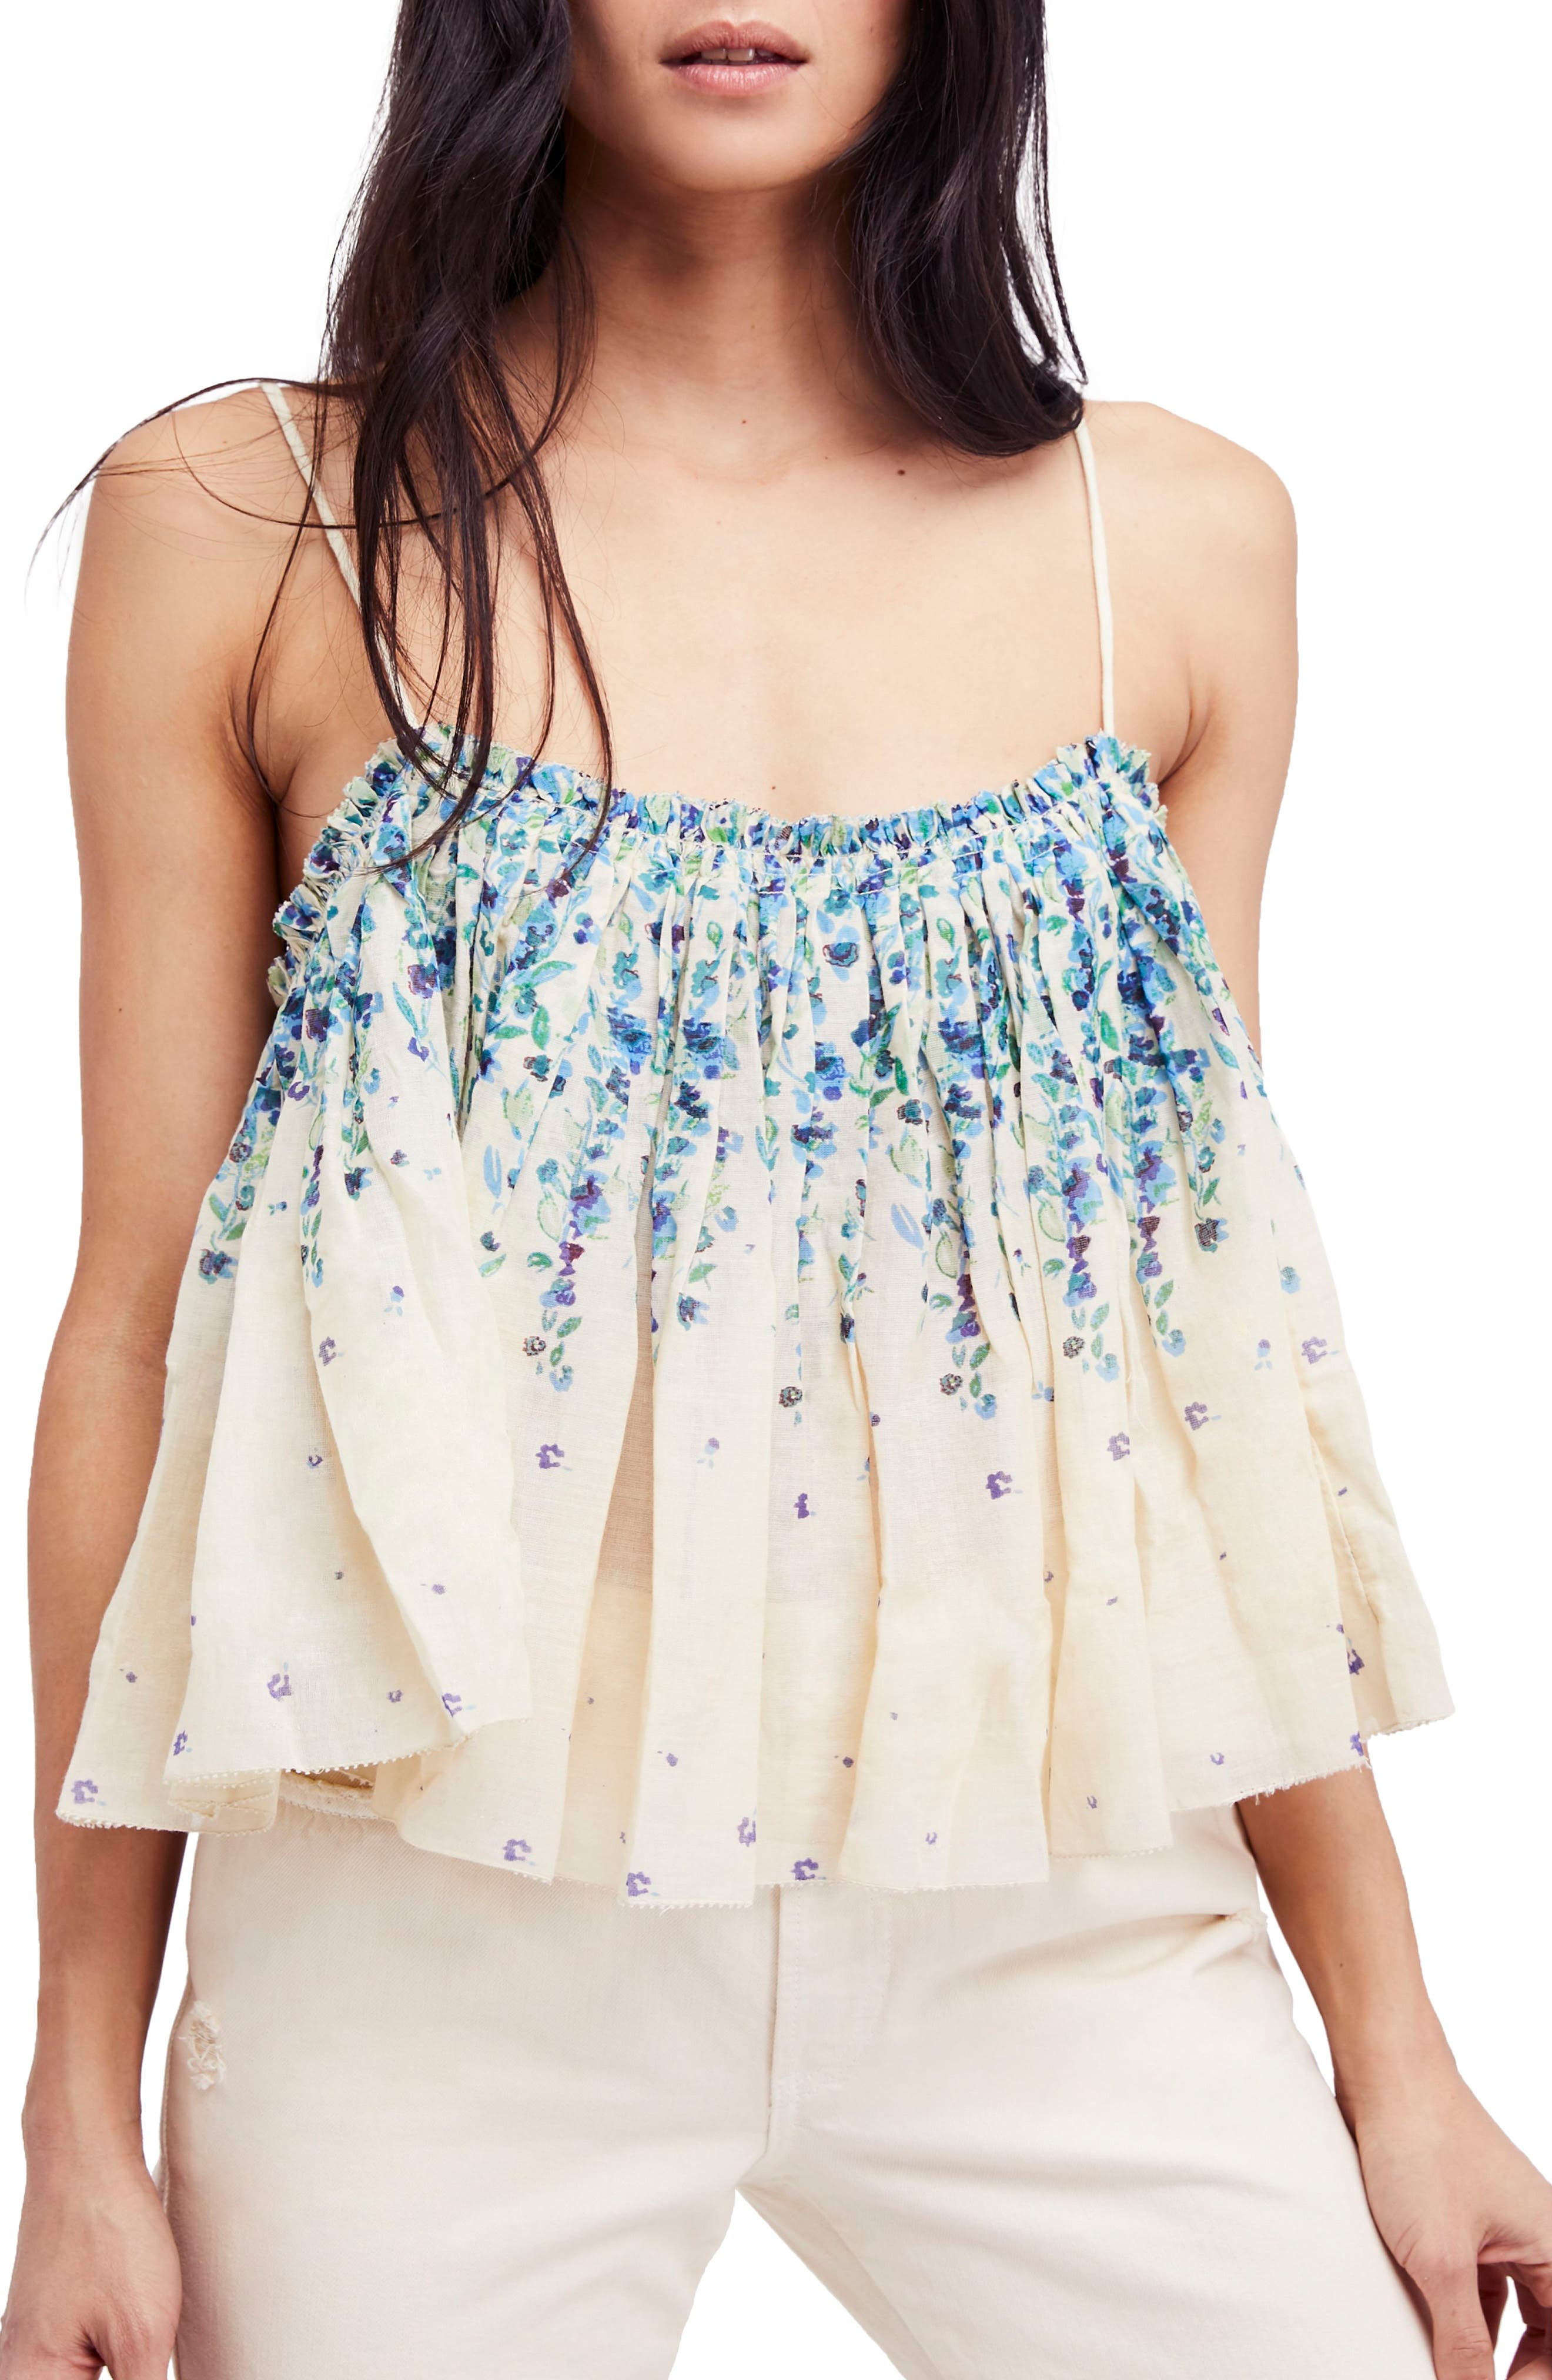 Instant Crush Camisole,                         Main,                         color, Ivory